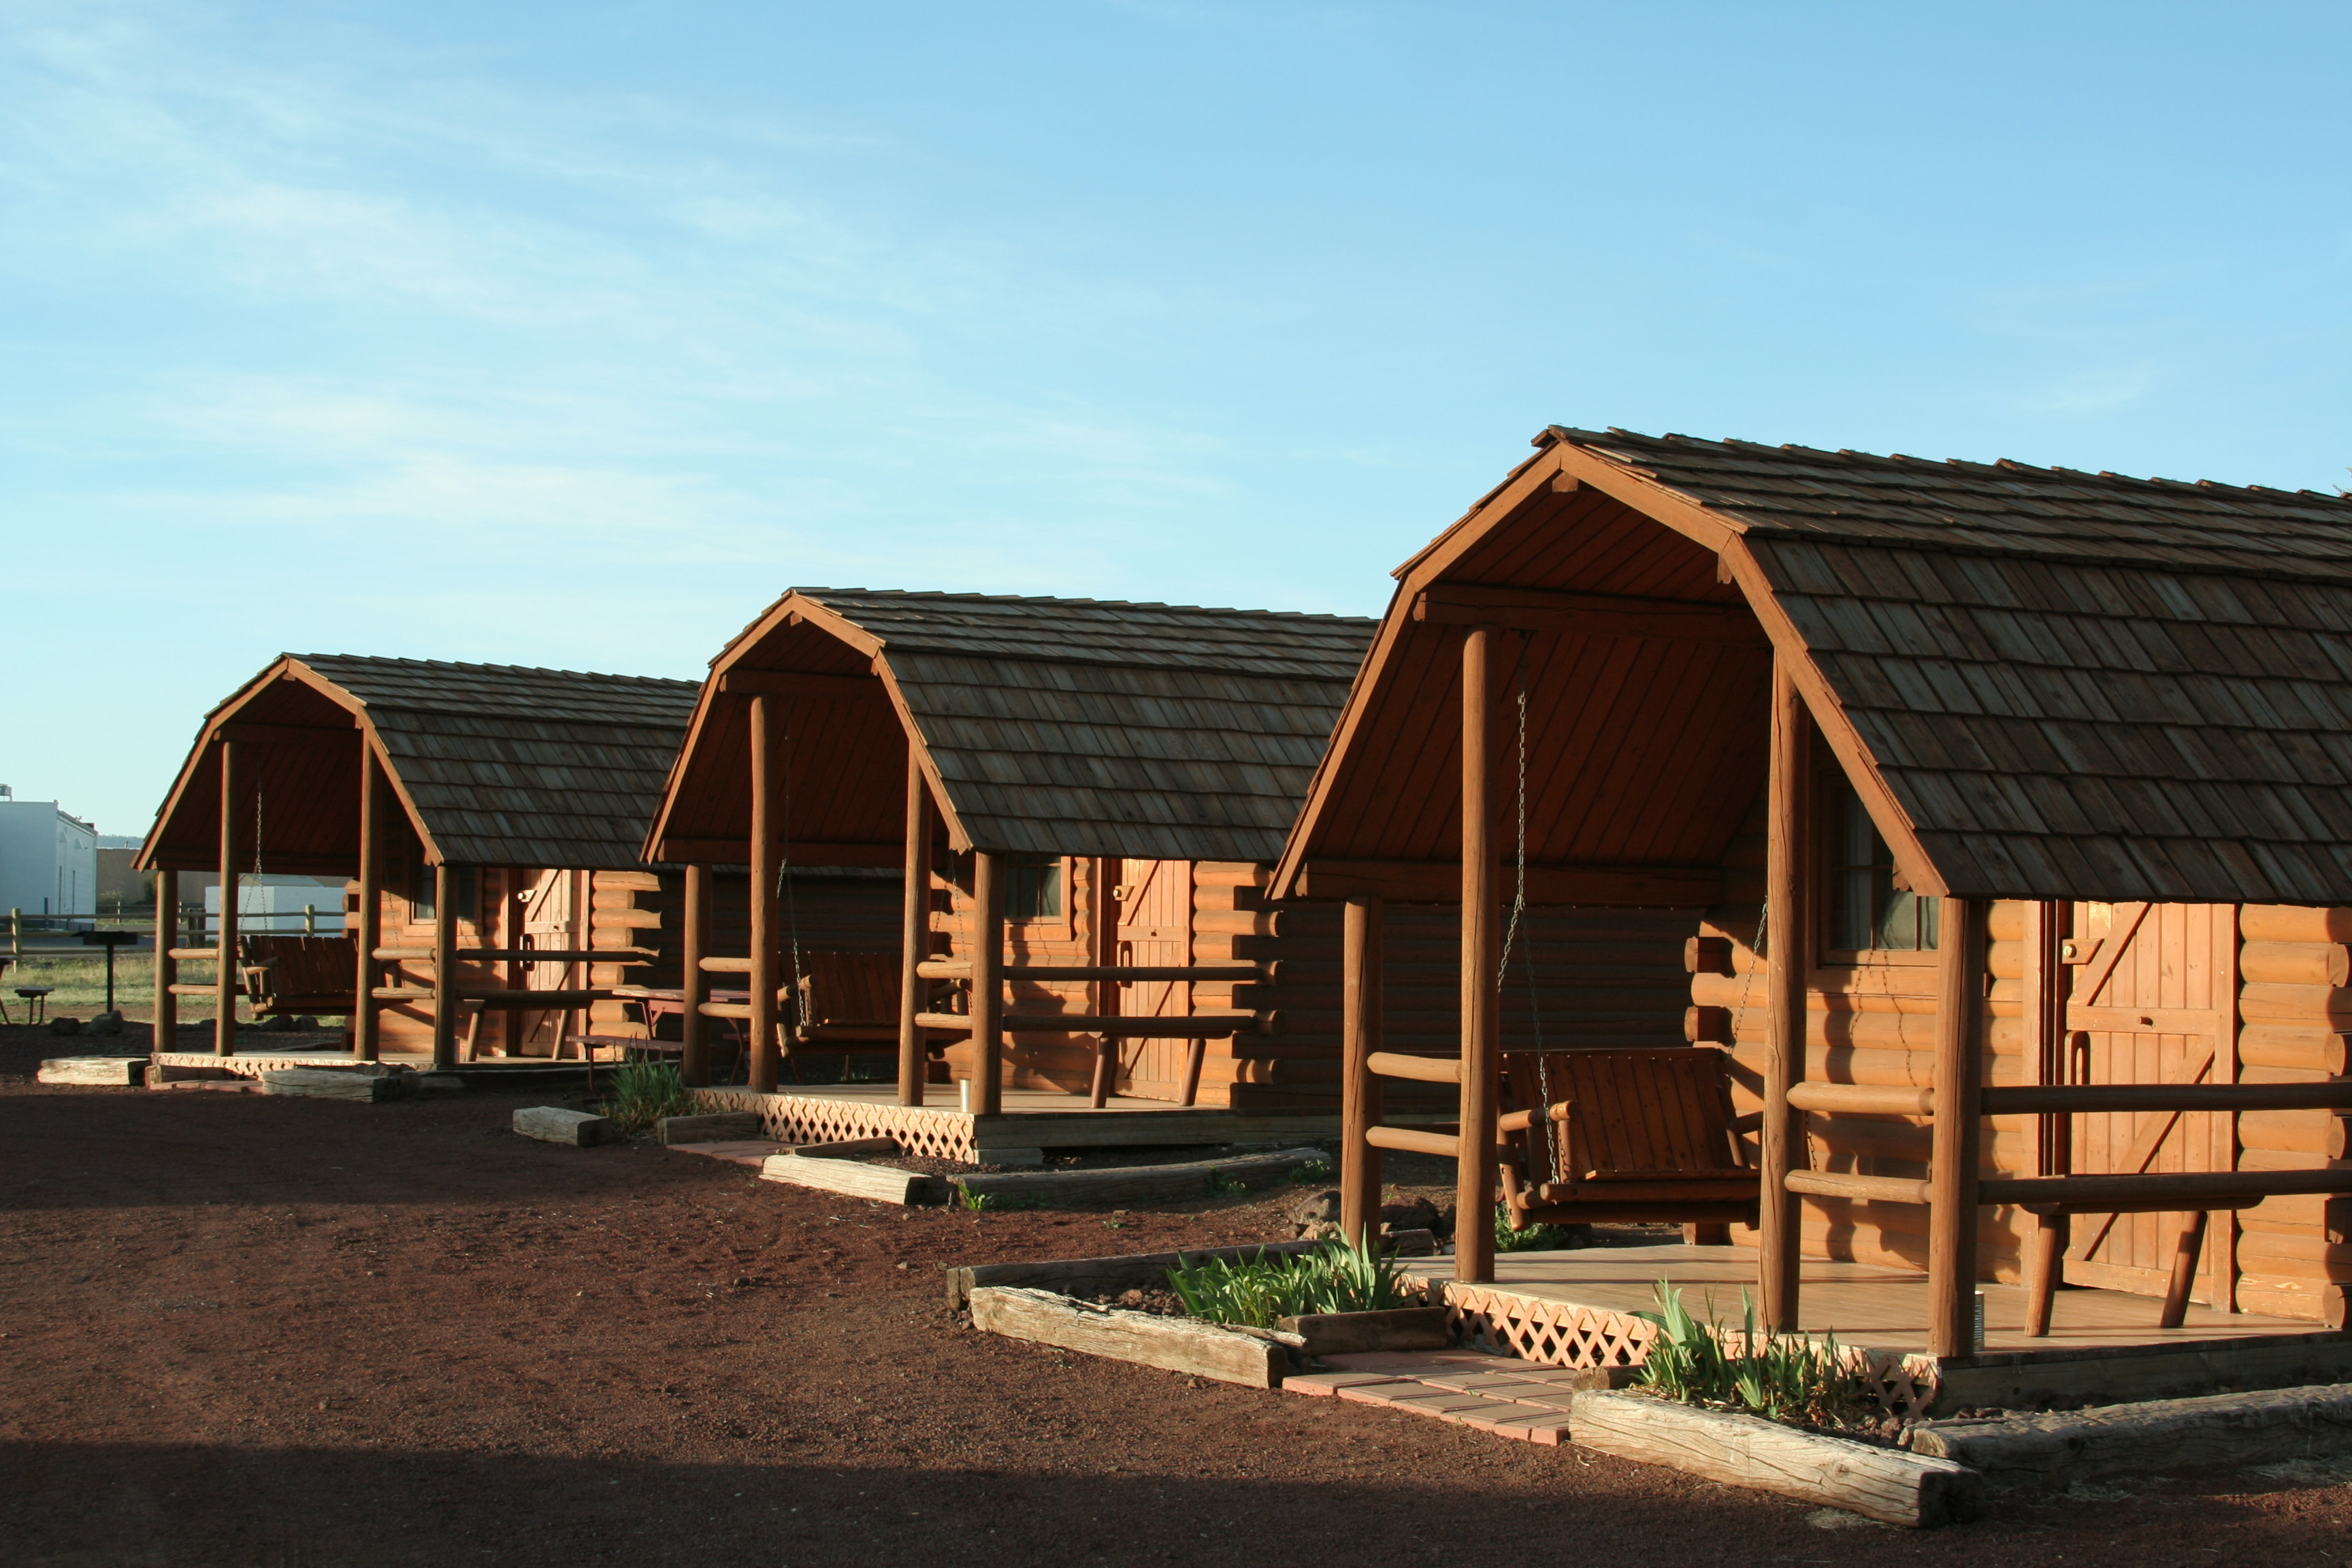 vacation right our rental beach in cabins resort over to manistee com mi all pine national feet pinelakecabins heart sports welcome az of on wellston sandy with seasons rentals beautiful lake cabin the